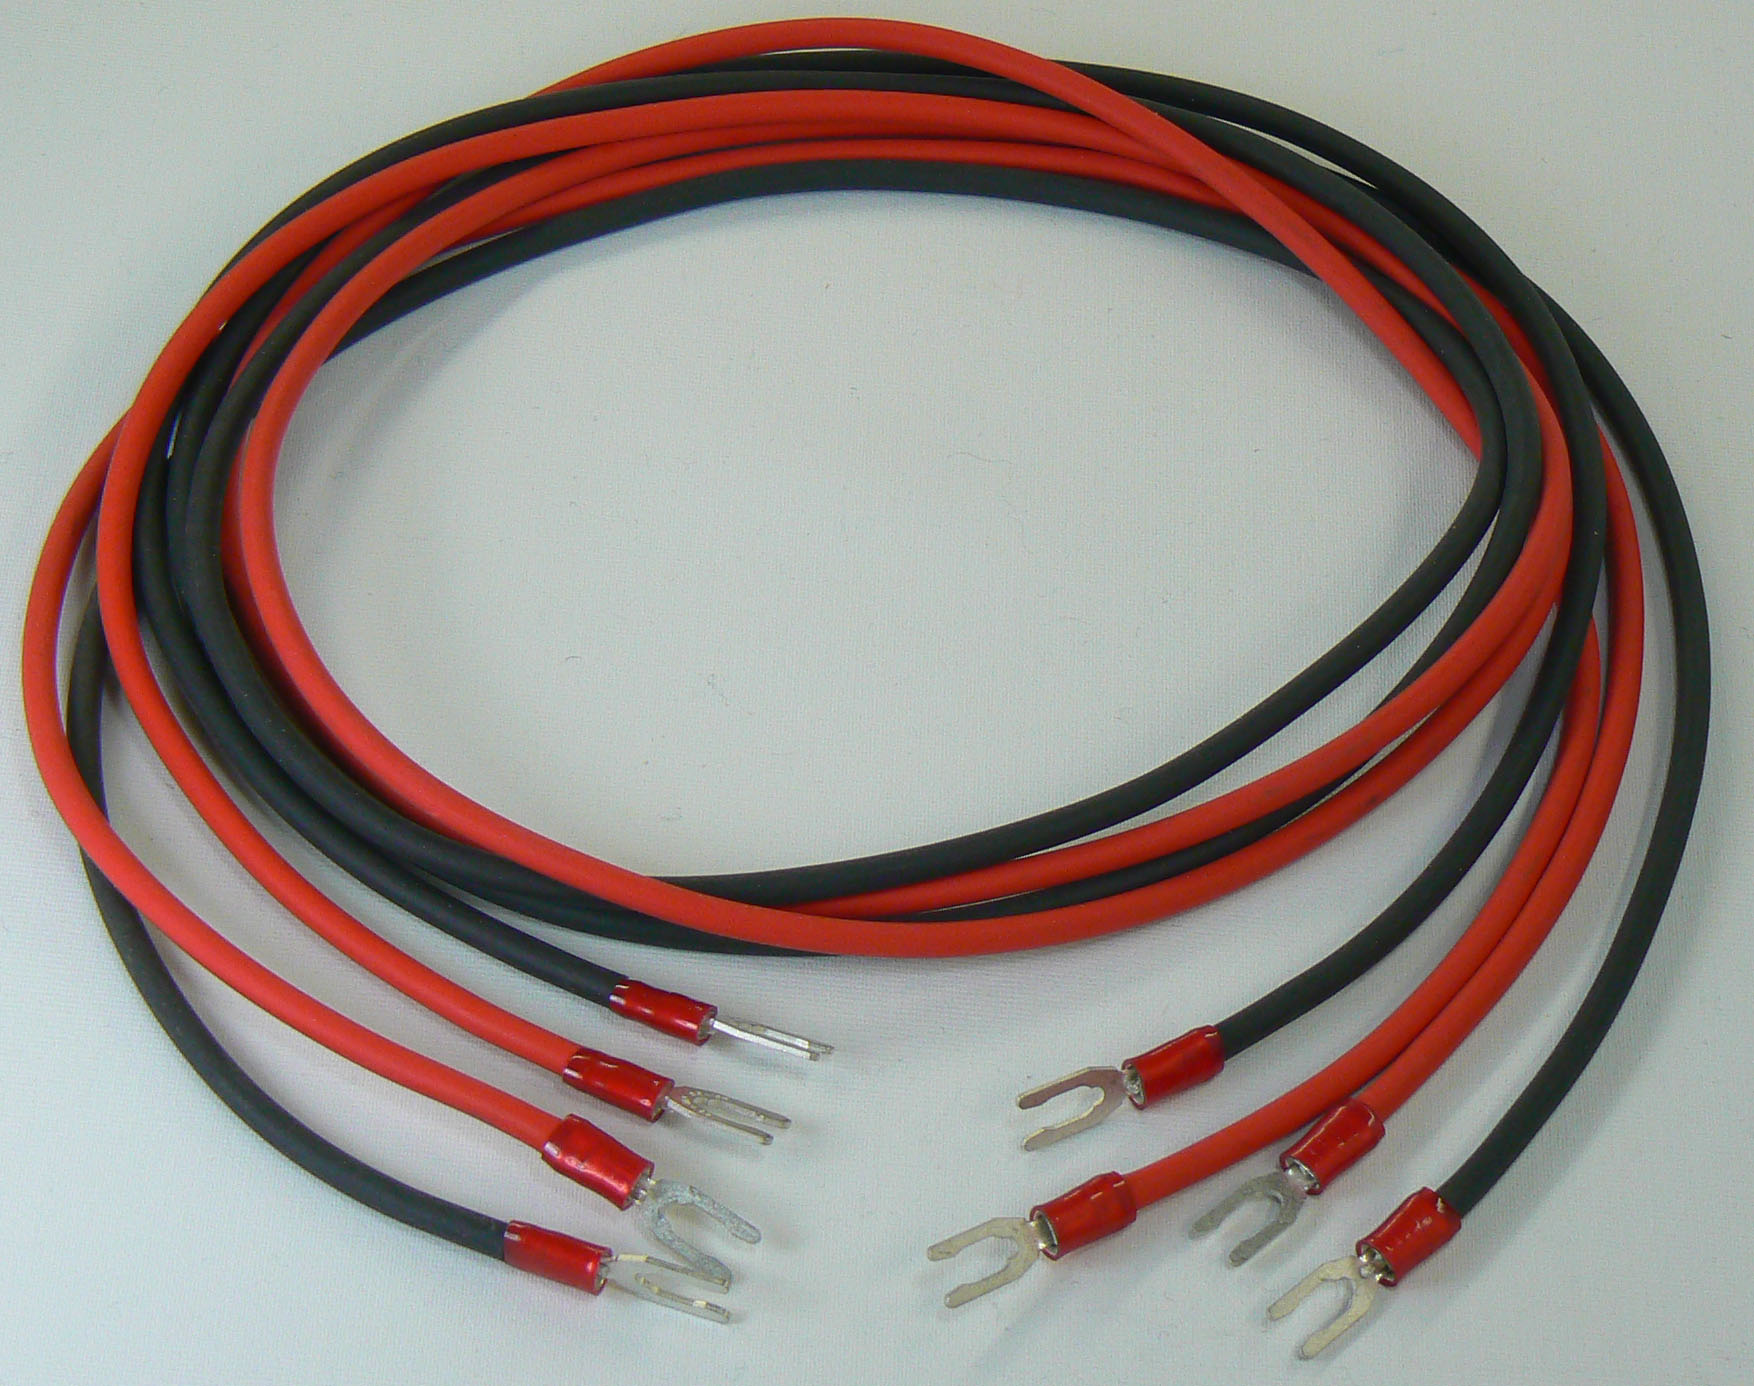 PIE 020-0206 RTD Wire Kit for discontinued 525